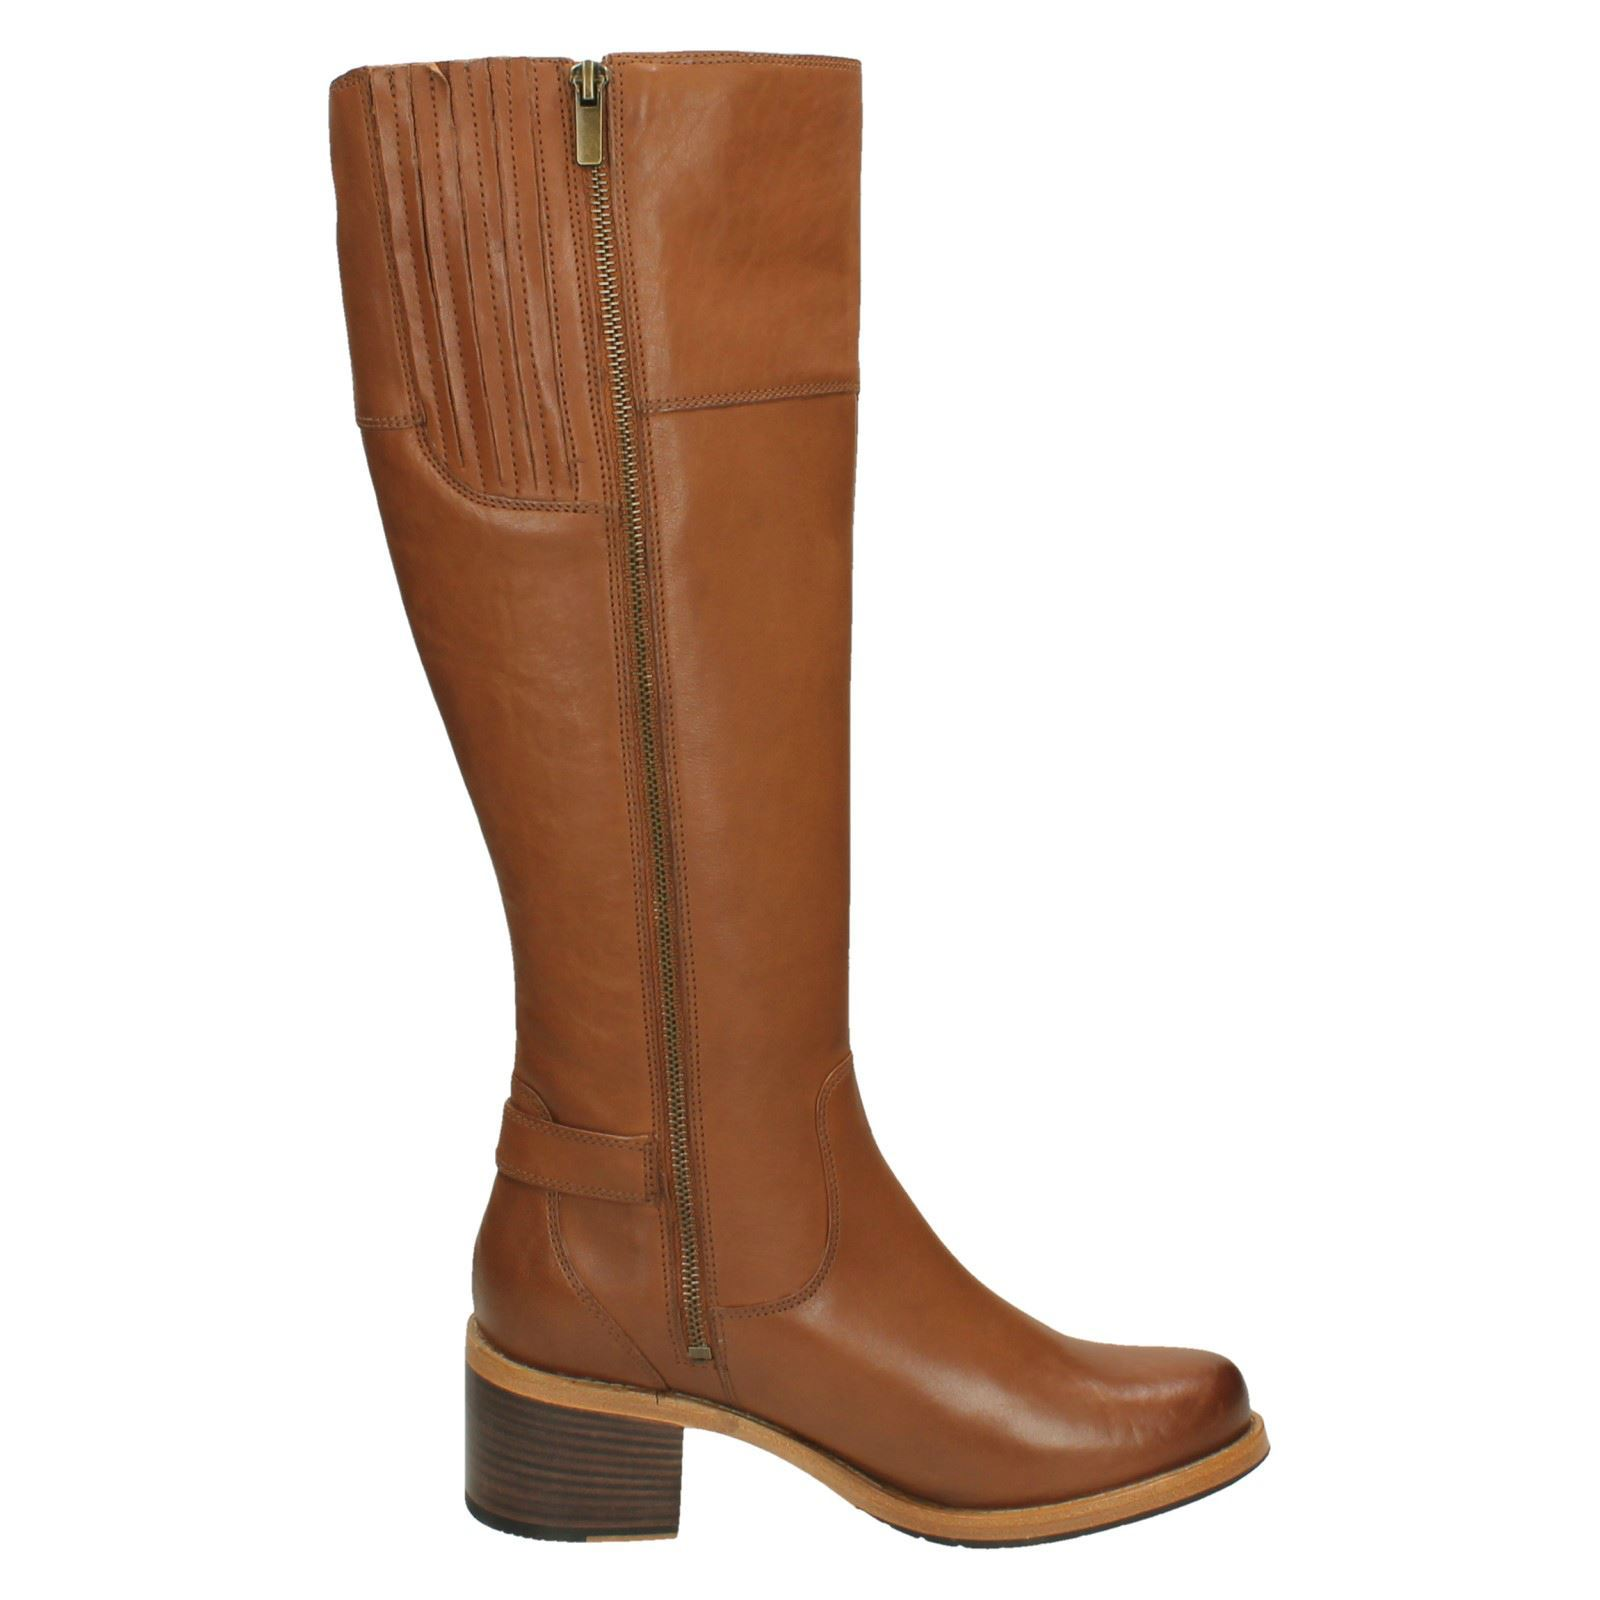 Ladies Clarks Heeled Knee High Boots Boots Boots 'Clarkdale Sona' b1ce67